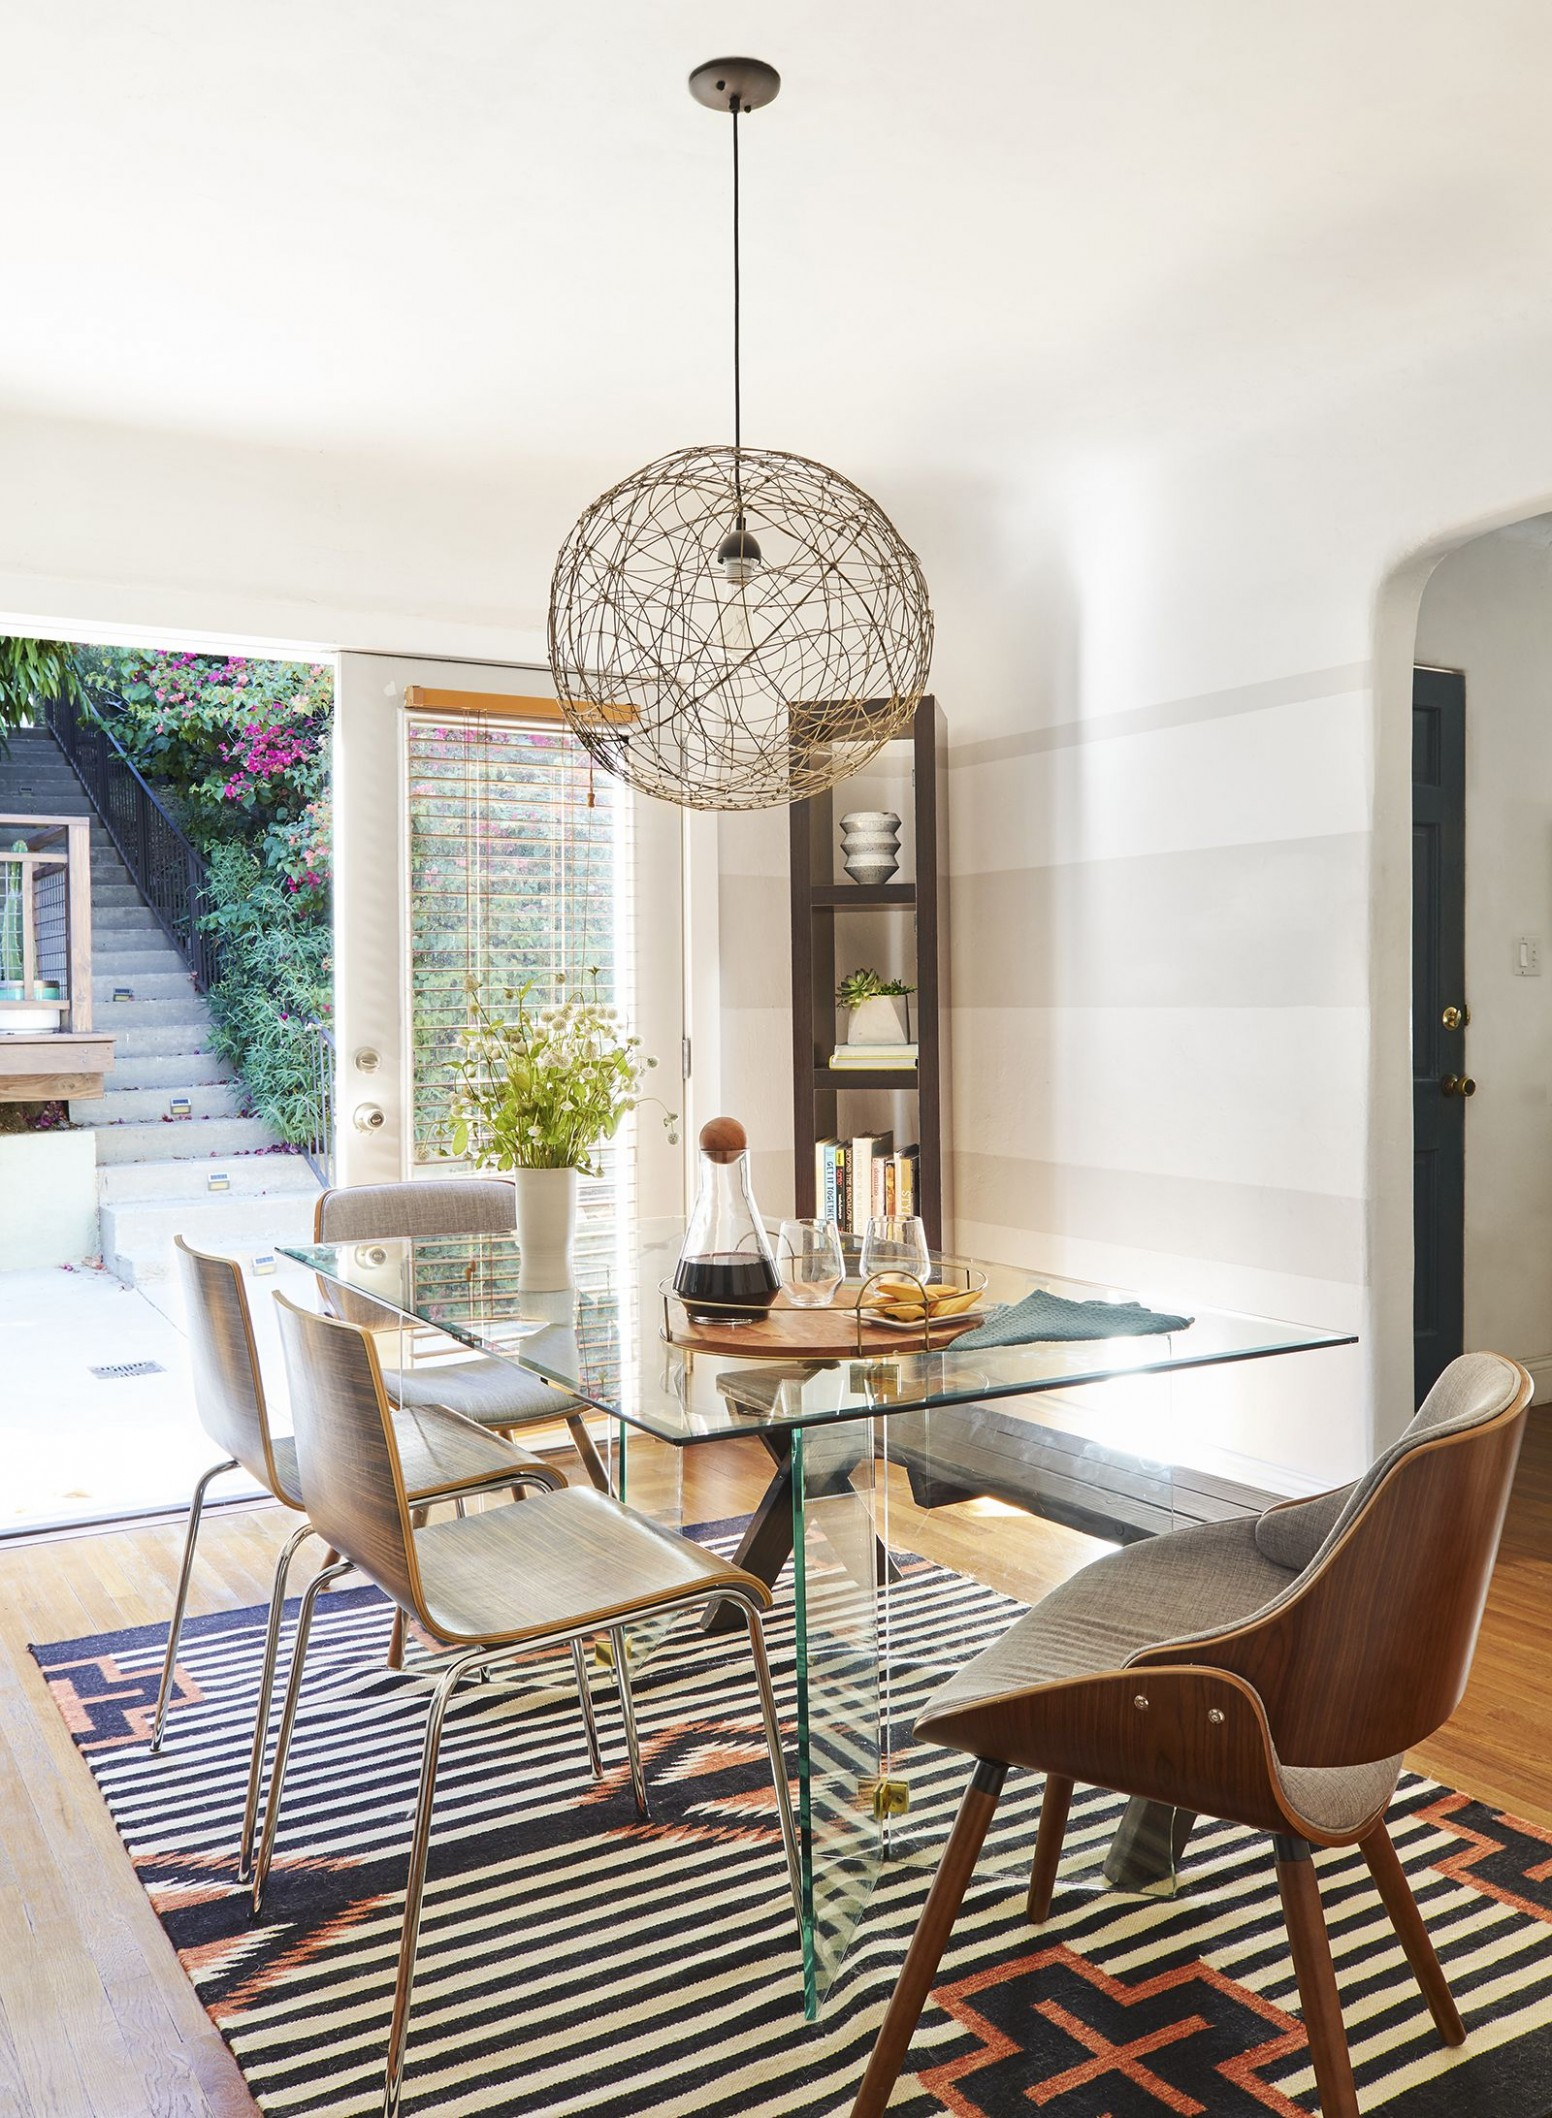 11 Small Dining Rooms That Make The Most Out of Limited Space - Dining Room Table Ideas For Small Spaces